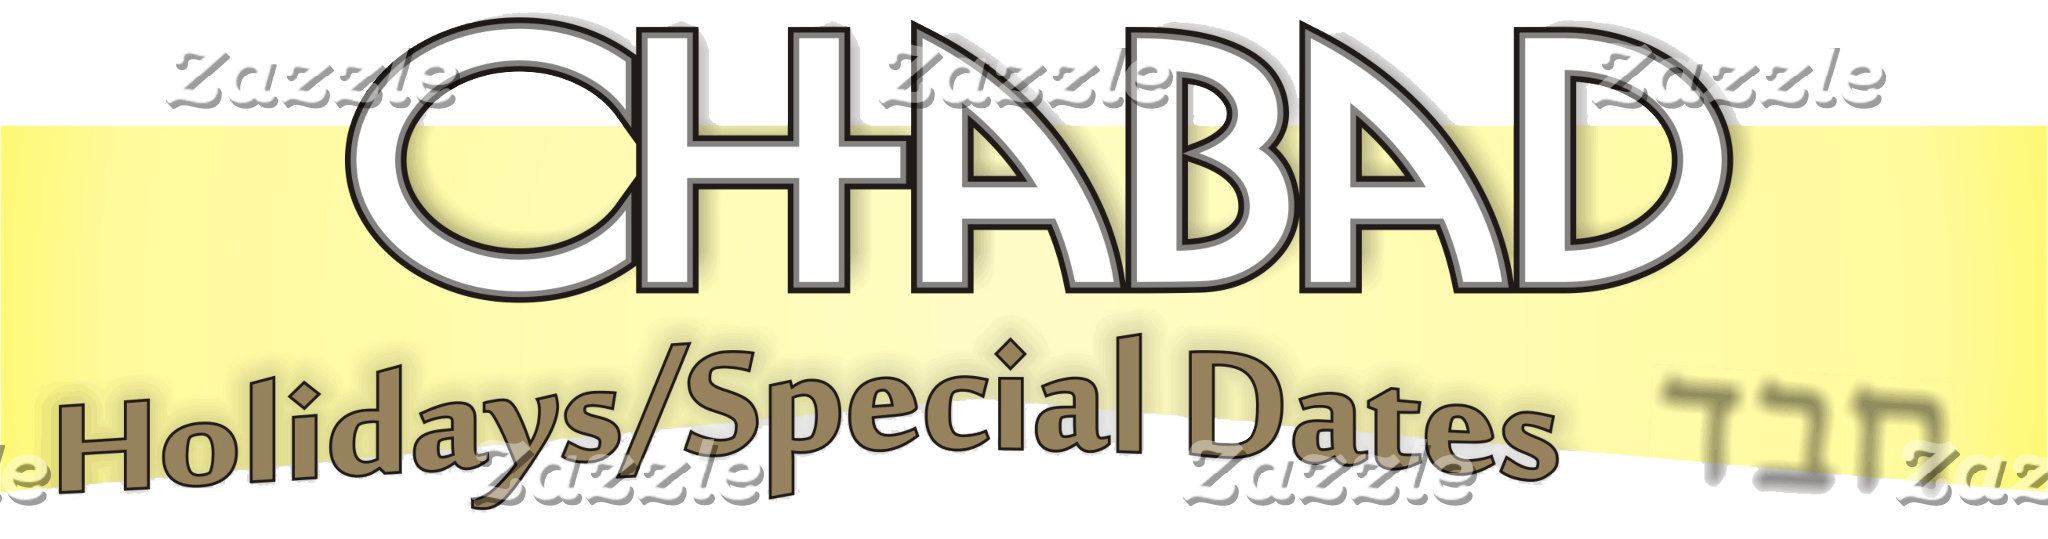 Chabad Special Dates & Holidays